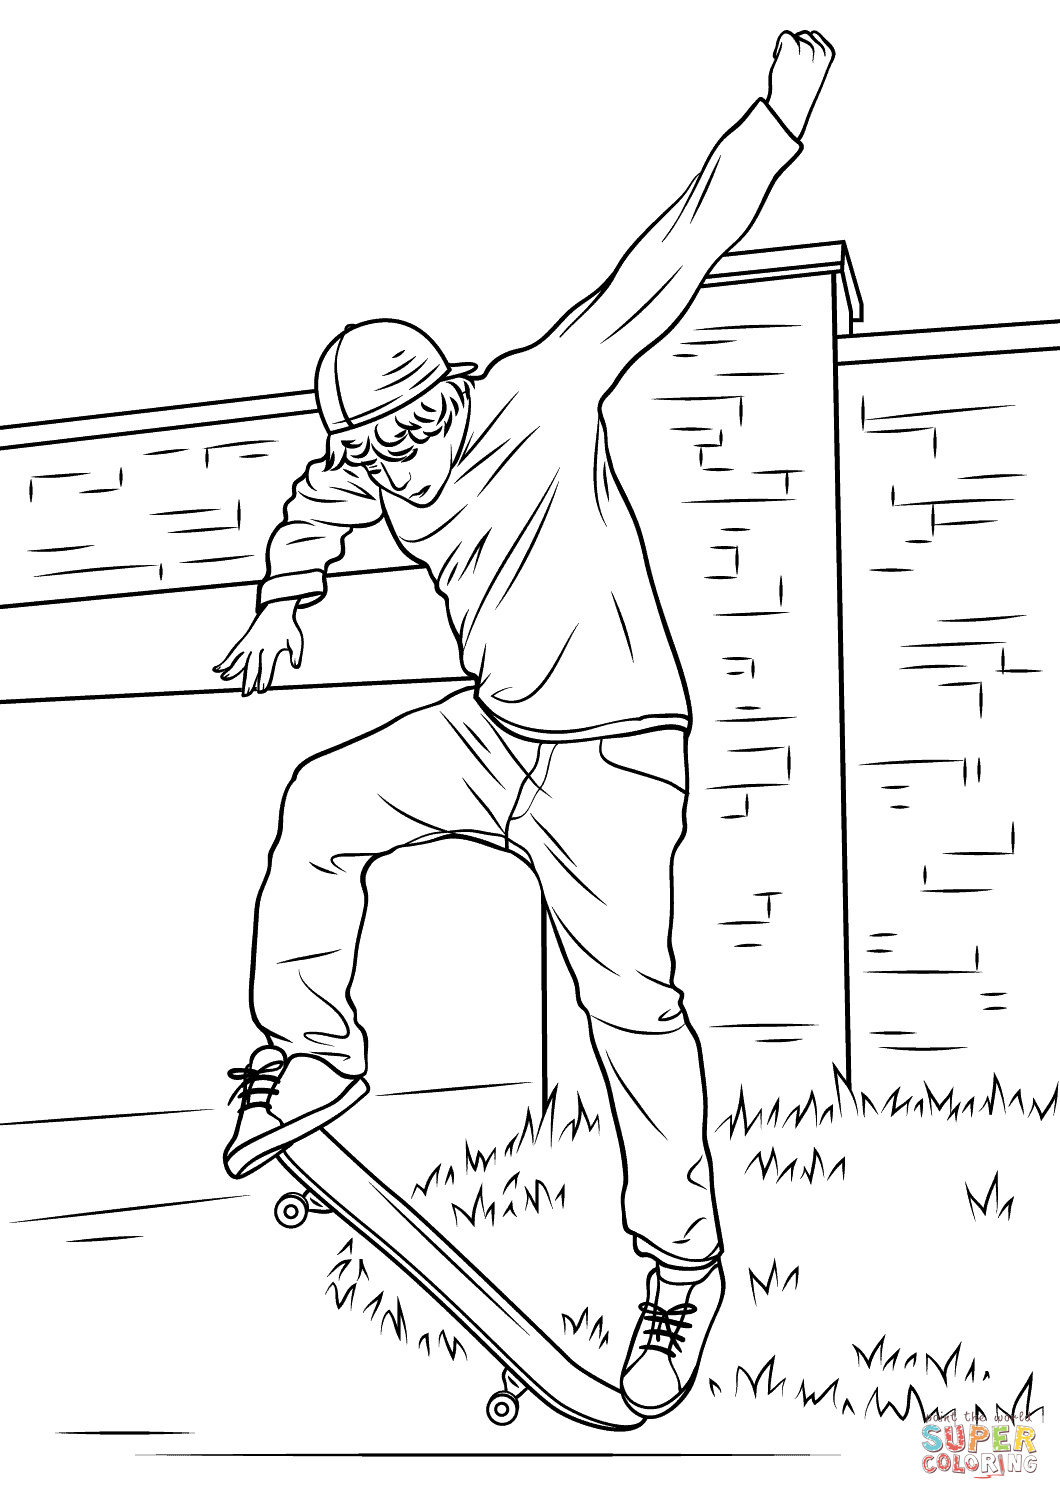 Drawing Boy And Skateboard Google Search Coloring Pages Skateboard Skateboard Boy